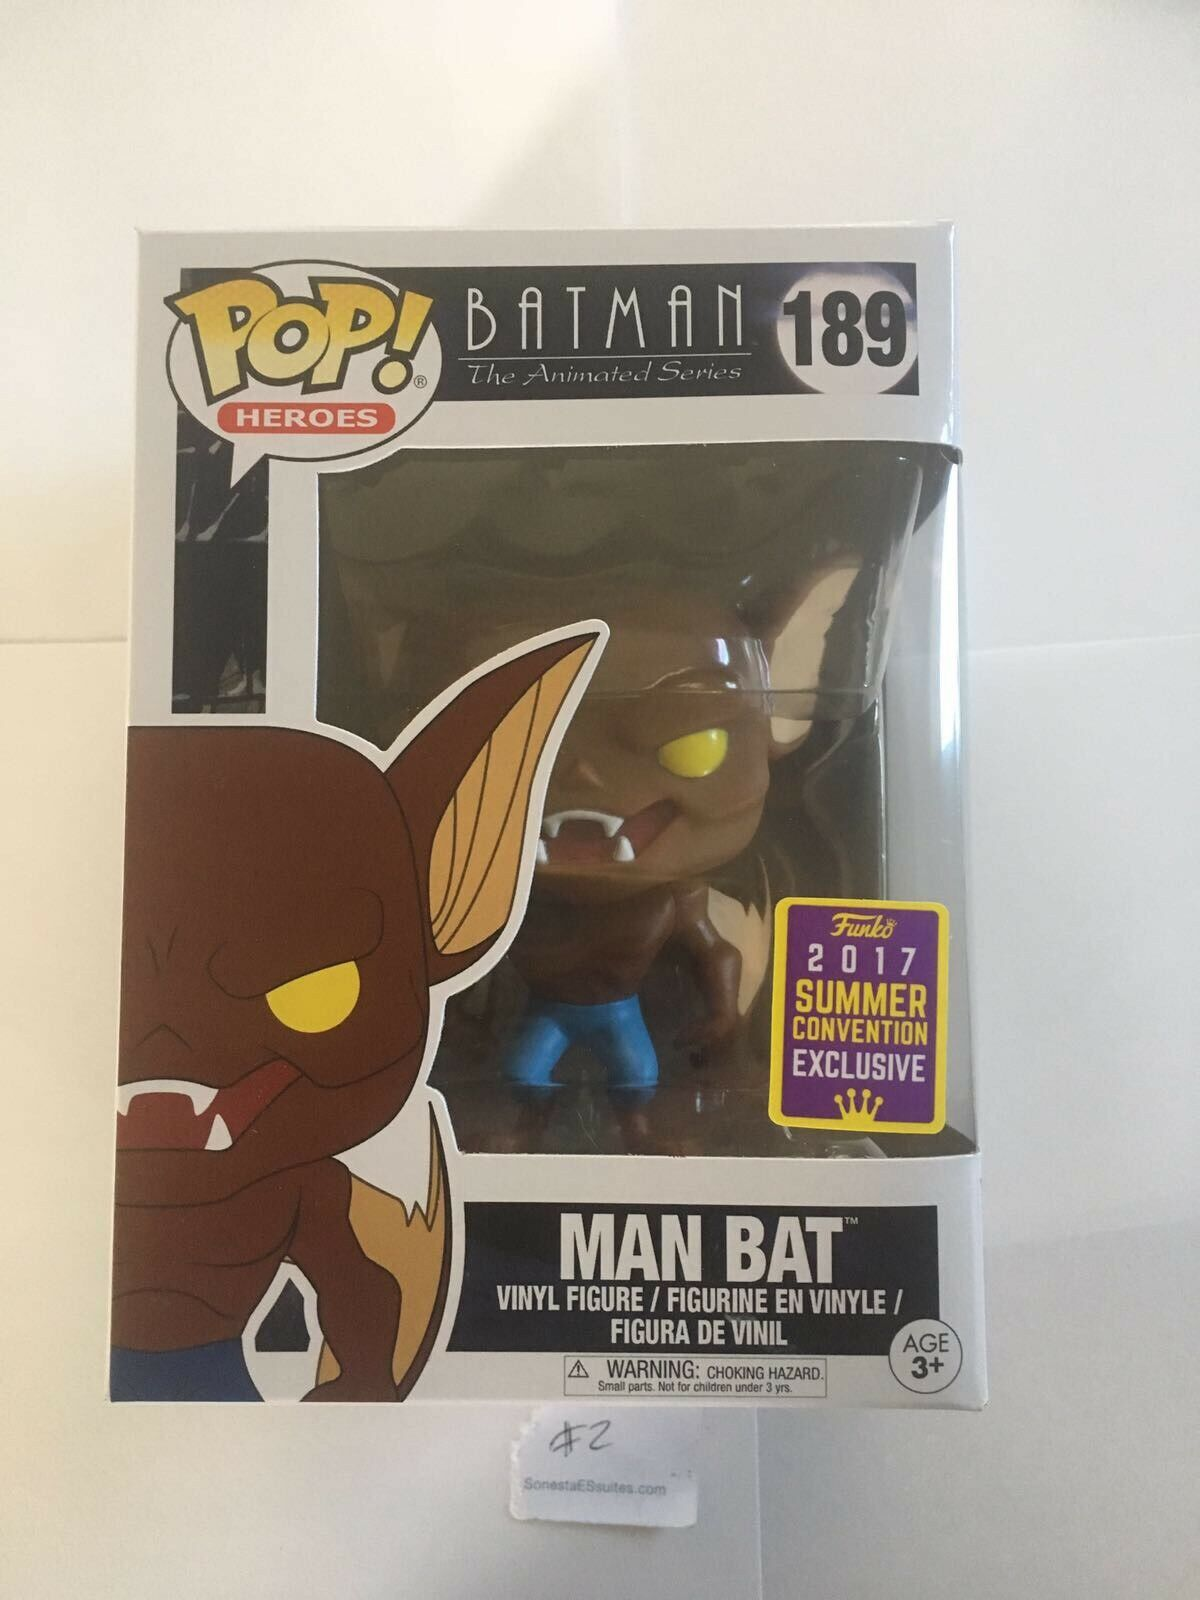 FUNKO POP MAN BAT SDCC 2017 SUMMER EXCLUSIVE BATMAN THE ANIMATED SERIES LIMITED